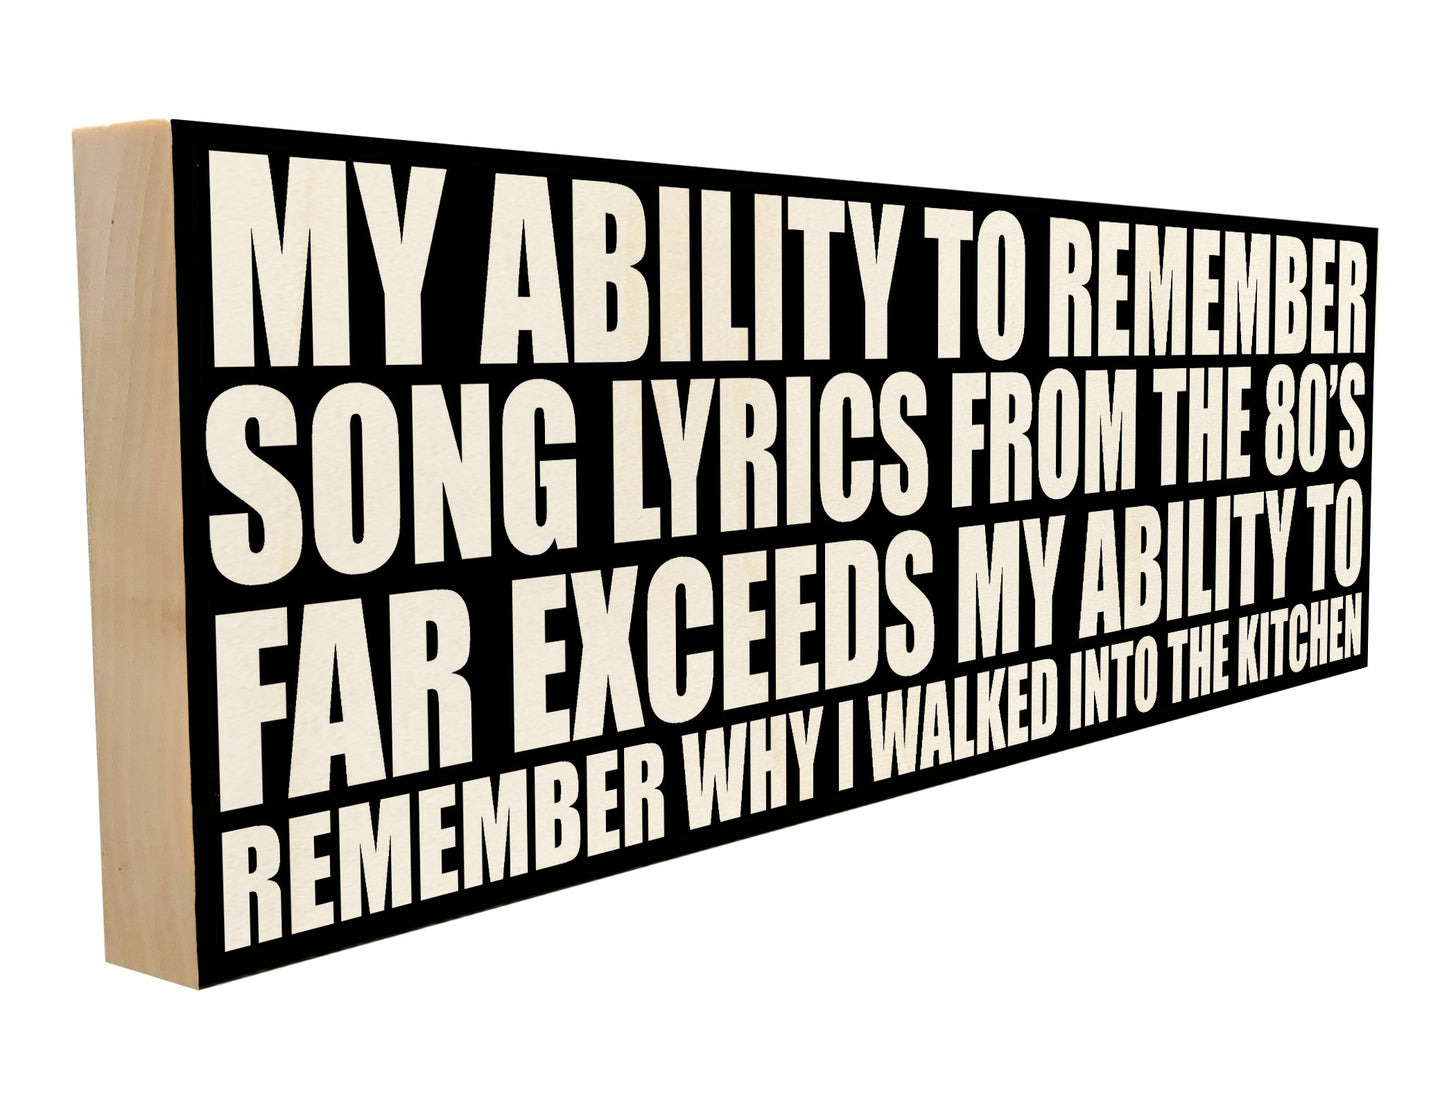 My Ability to Remember Song Lyrics from the 80's Far Exceeds My Ability to Remember Why I Walked Into the Kitchen.